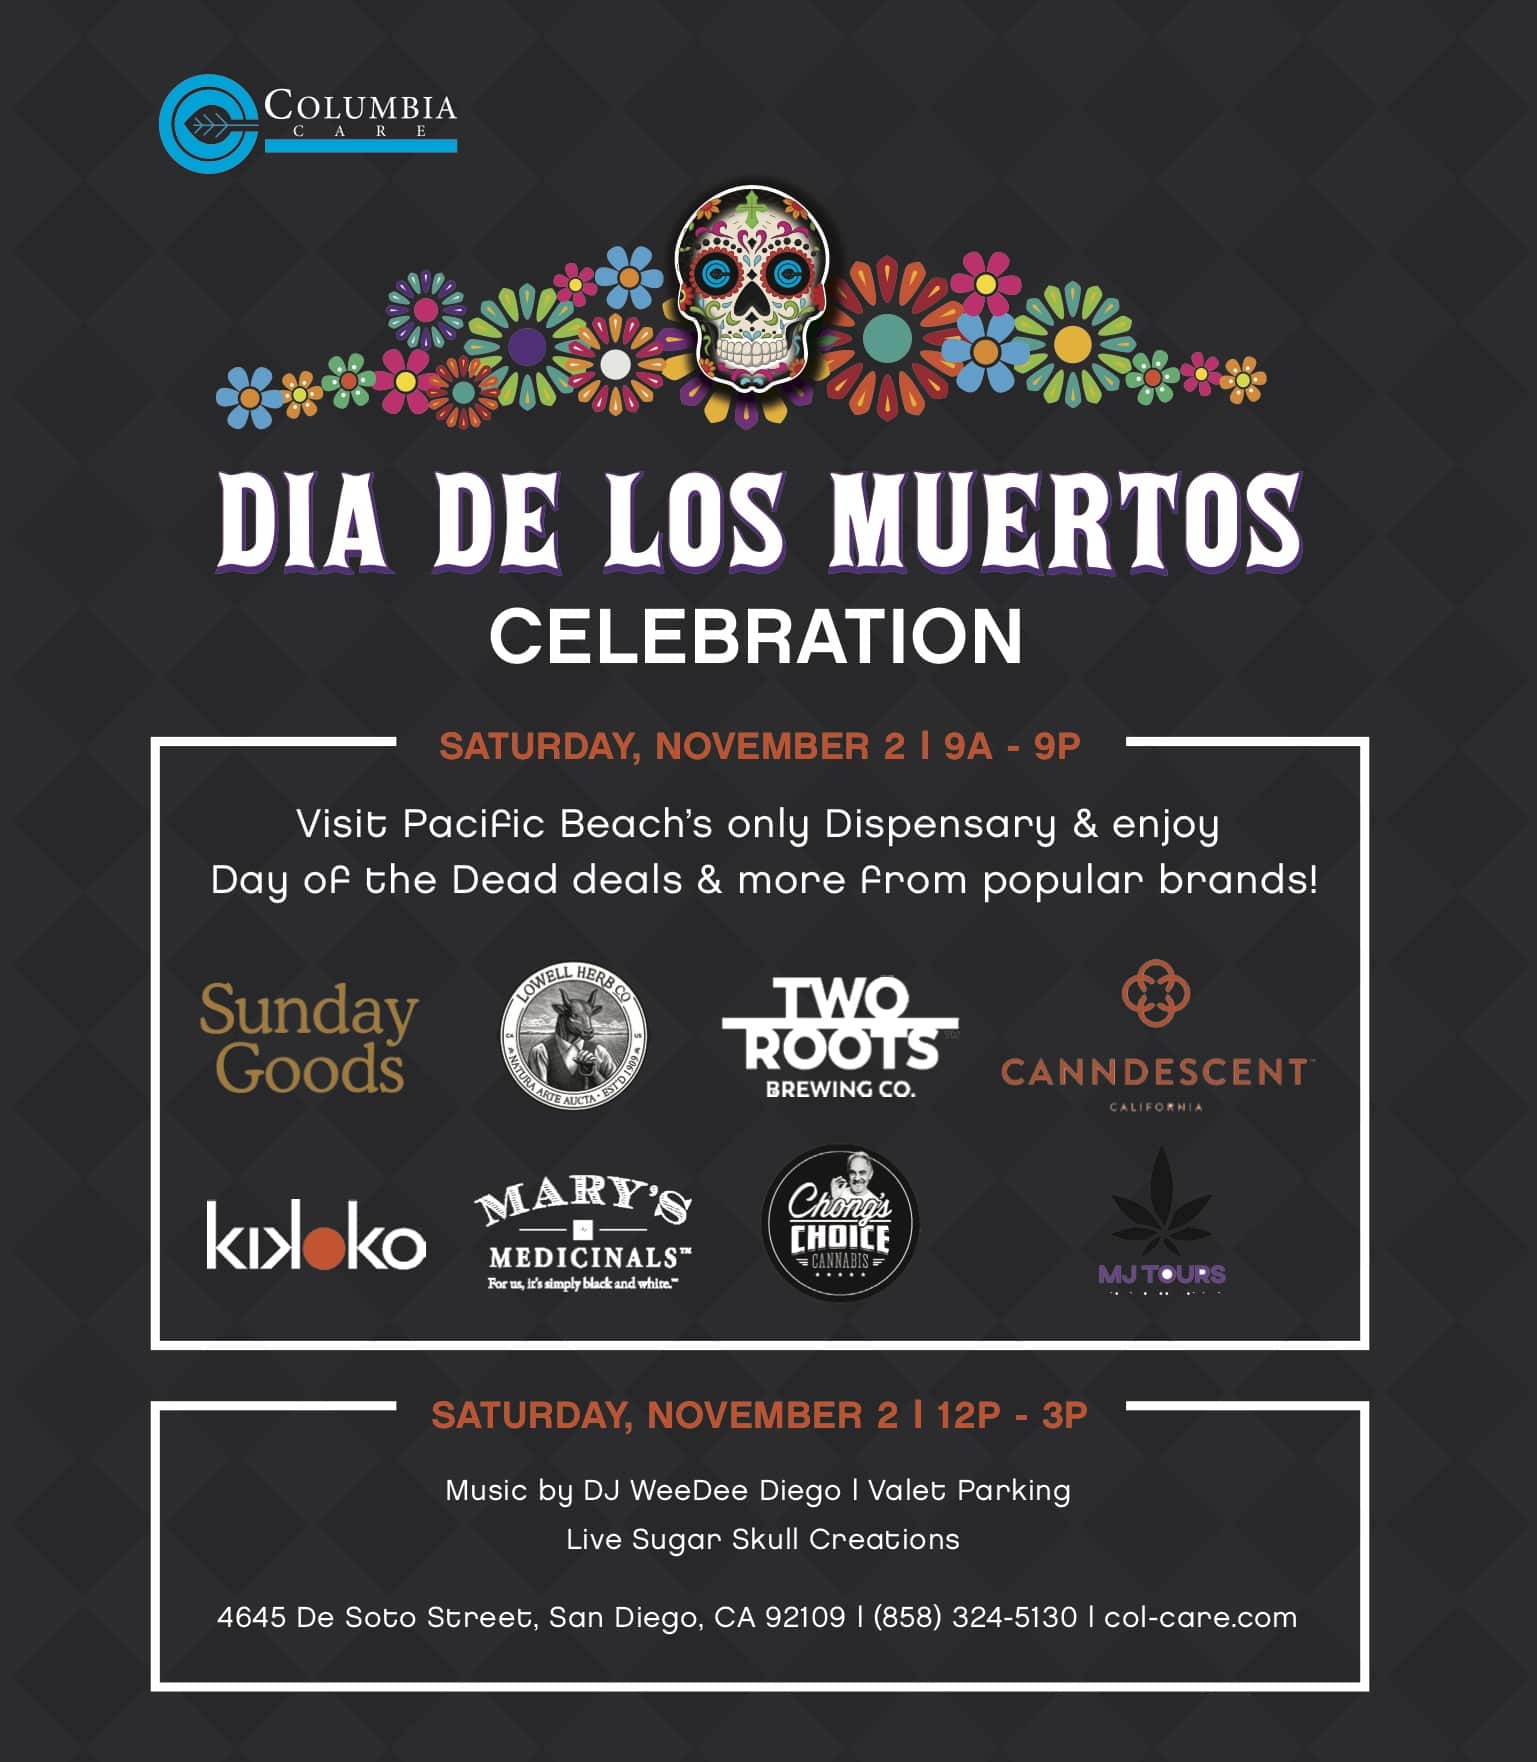 Columbia Care California Day of the Dead Celebration